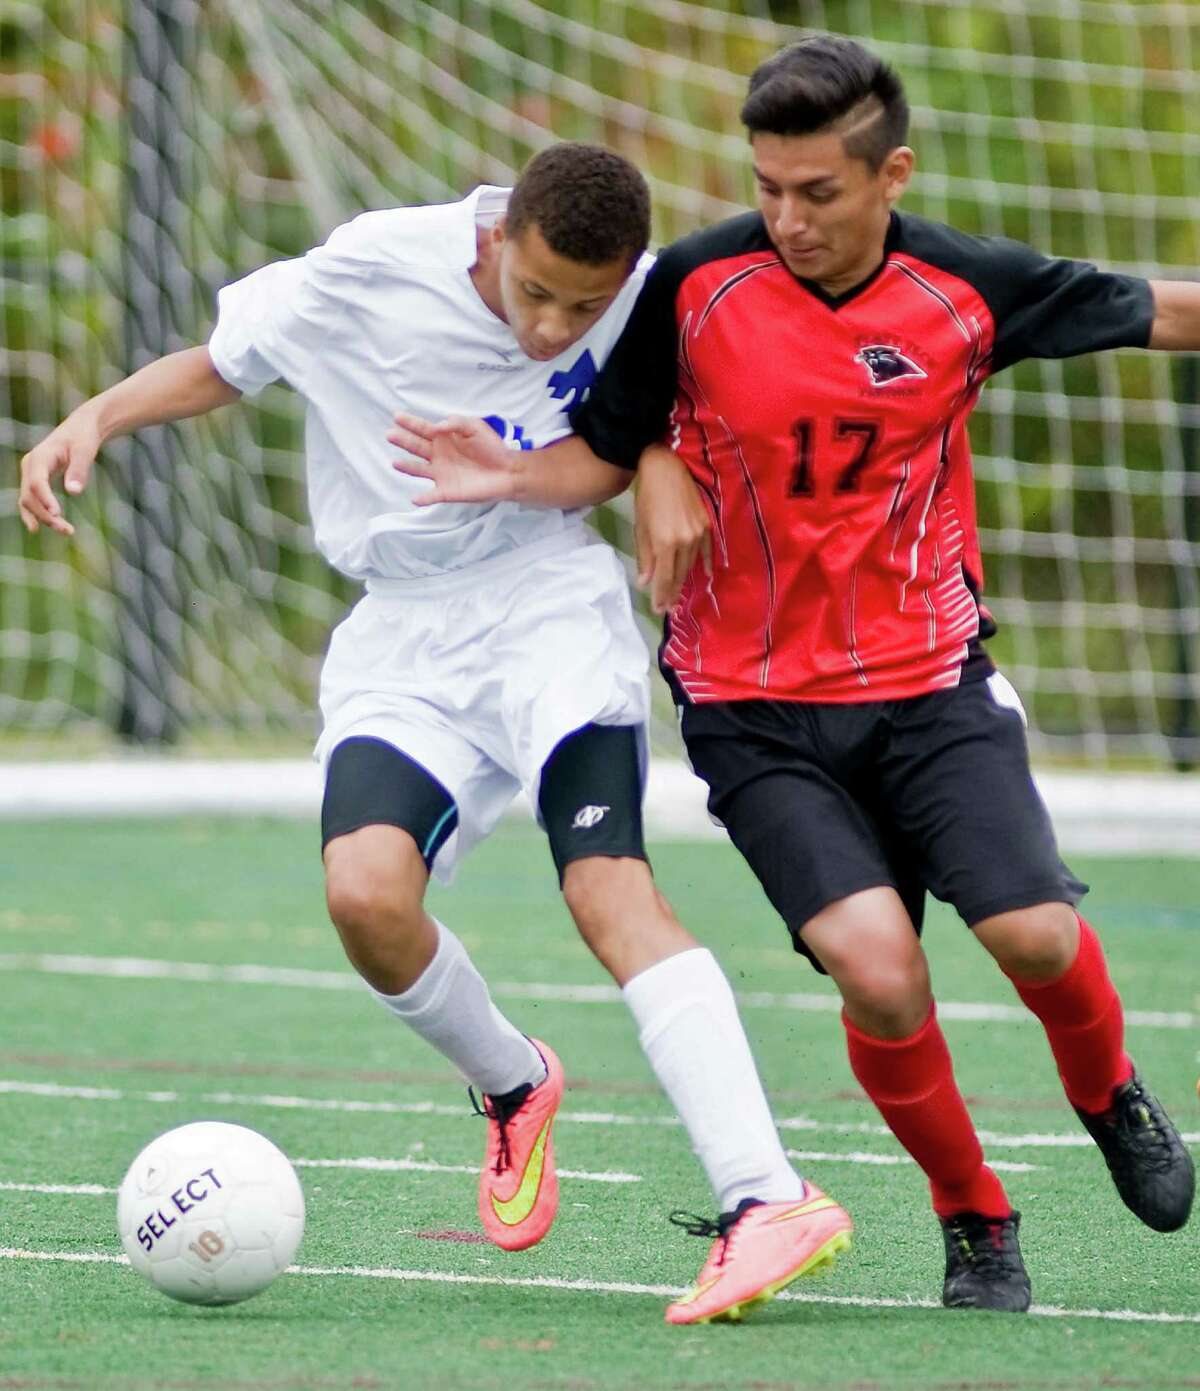 FILE PHOTO: Abbott Tech's Cristiano DaSilva and Platt Tech's Israel Zelocuatecat shove each other during a game at Broadview Middle School in Danbury. Thursday, Sept. 25, 2014